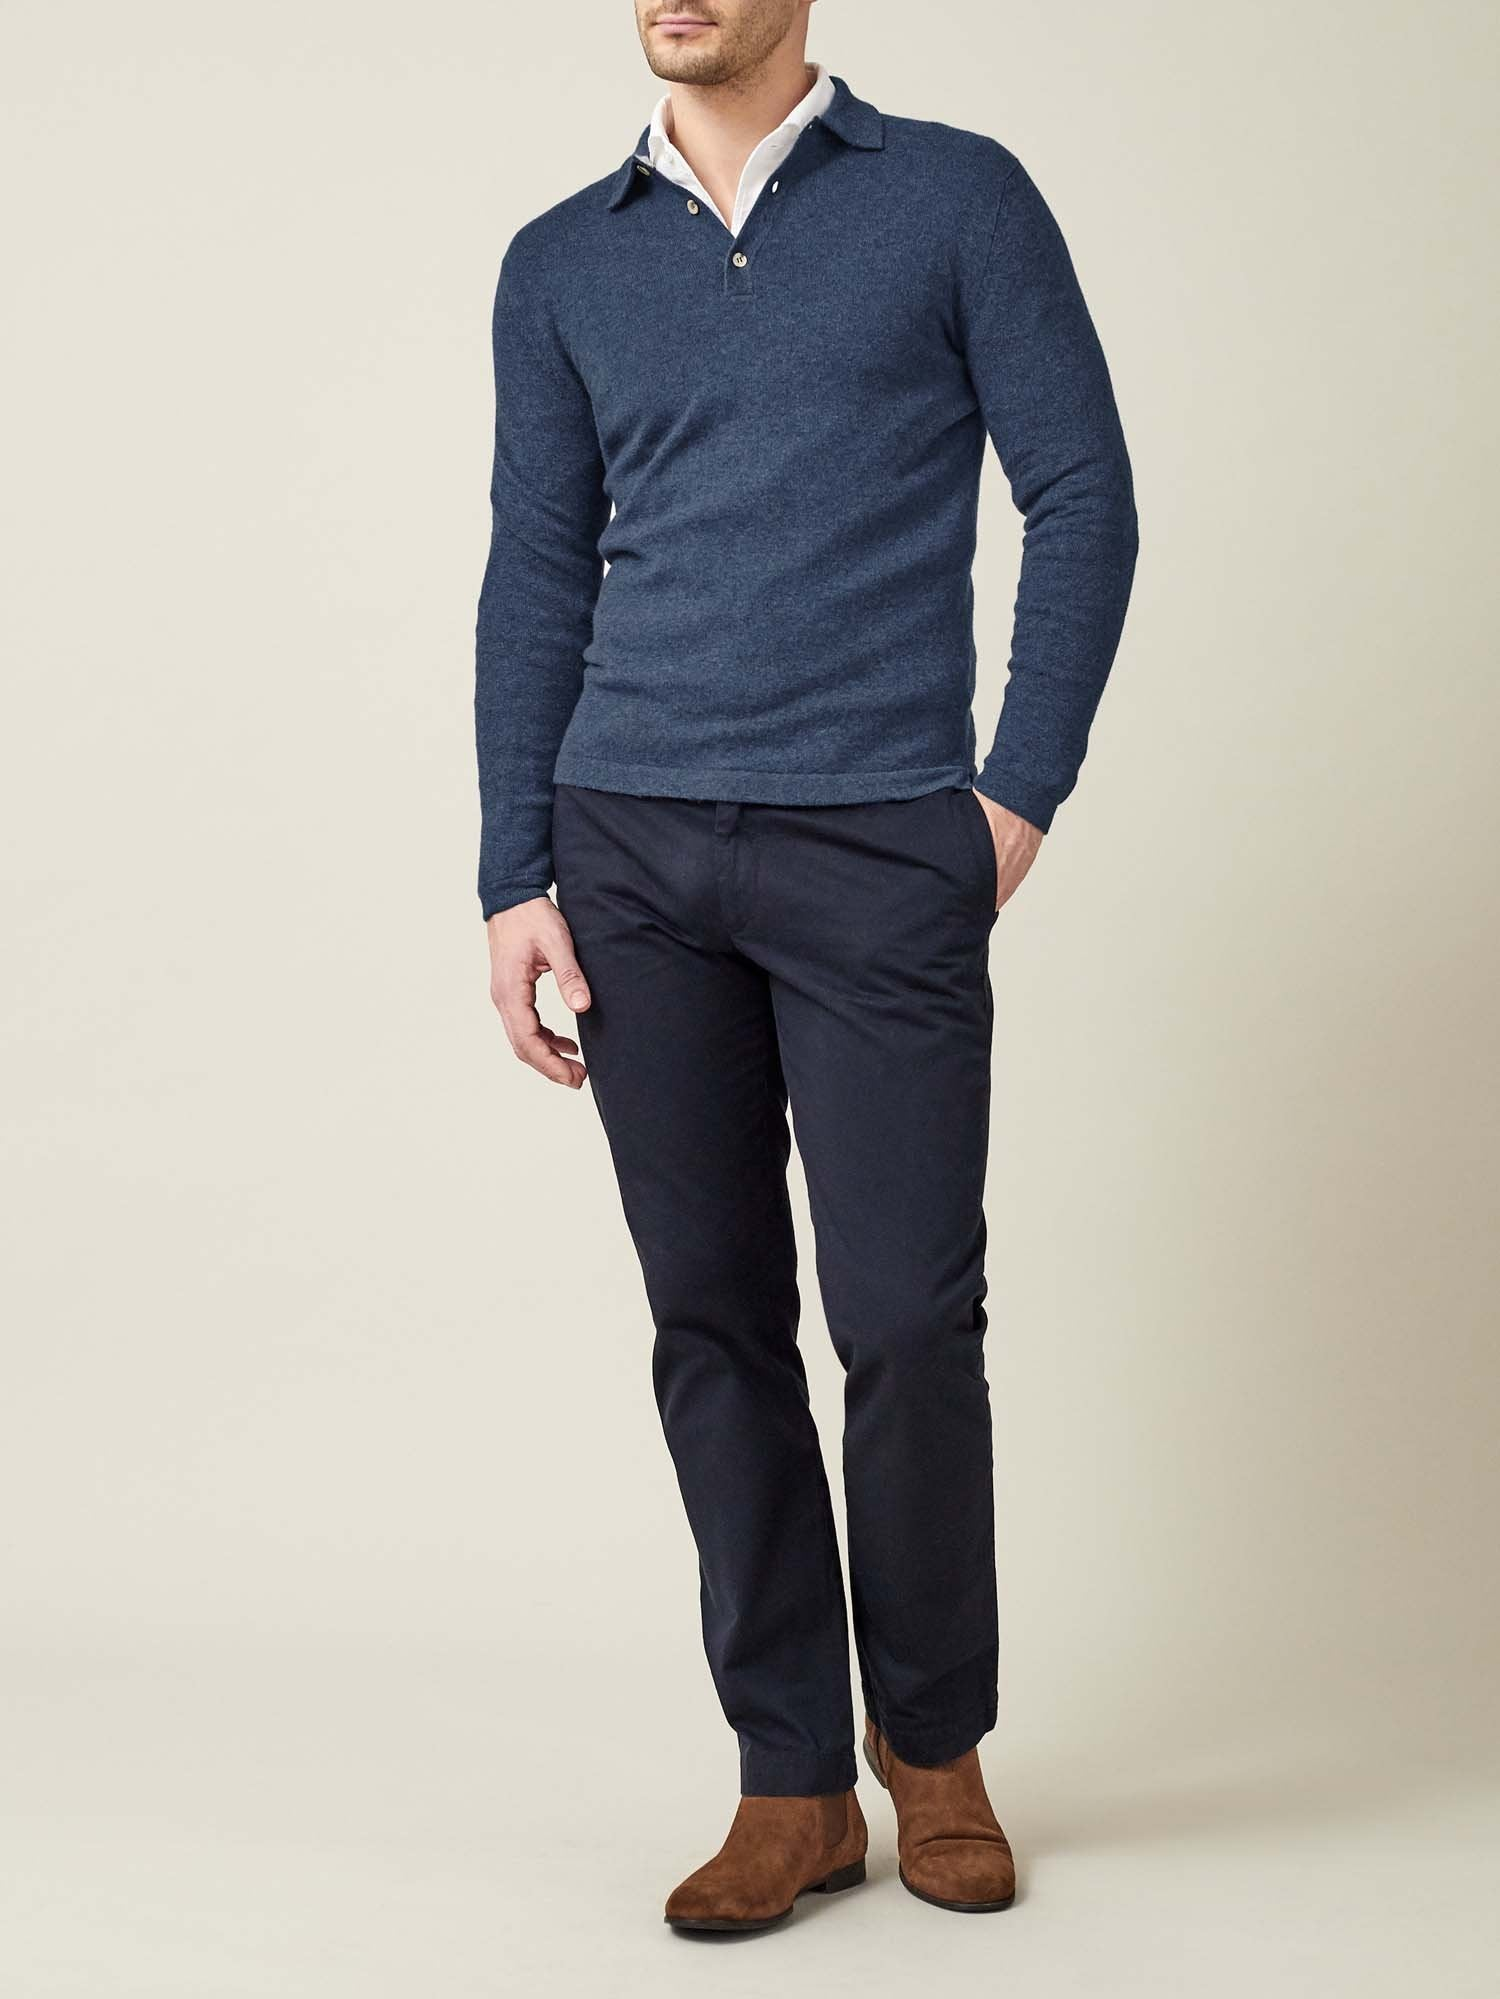 bfbe261d01c Atlantic Blue Cashmere Polo Sweater - Crafted in Italy   Luca Faloni